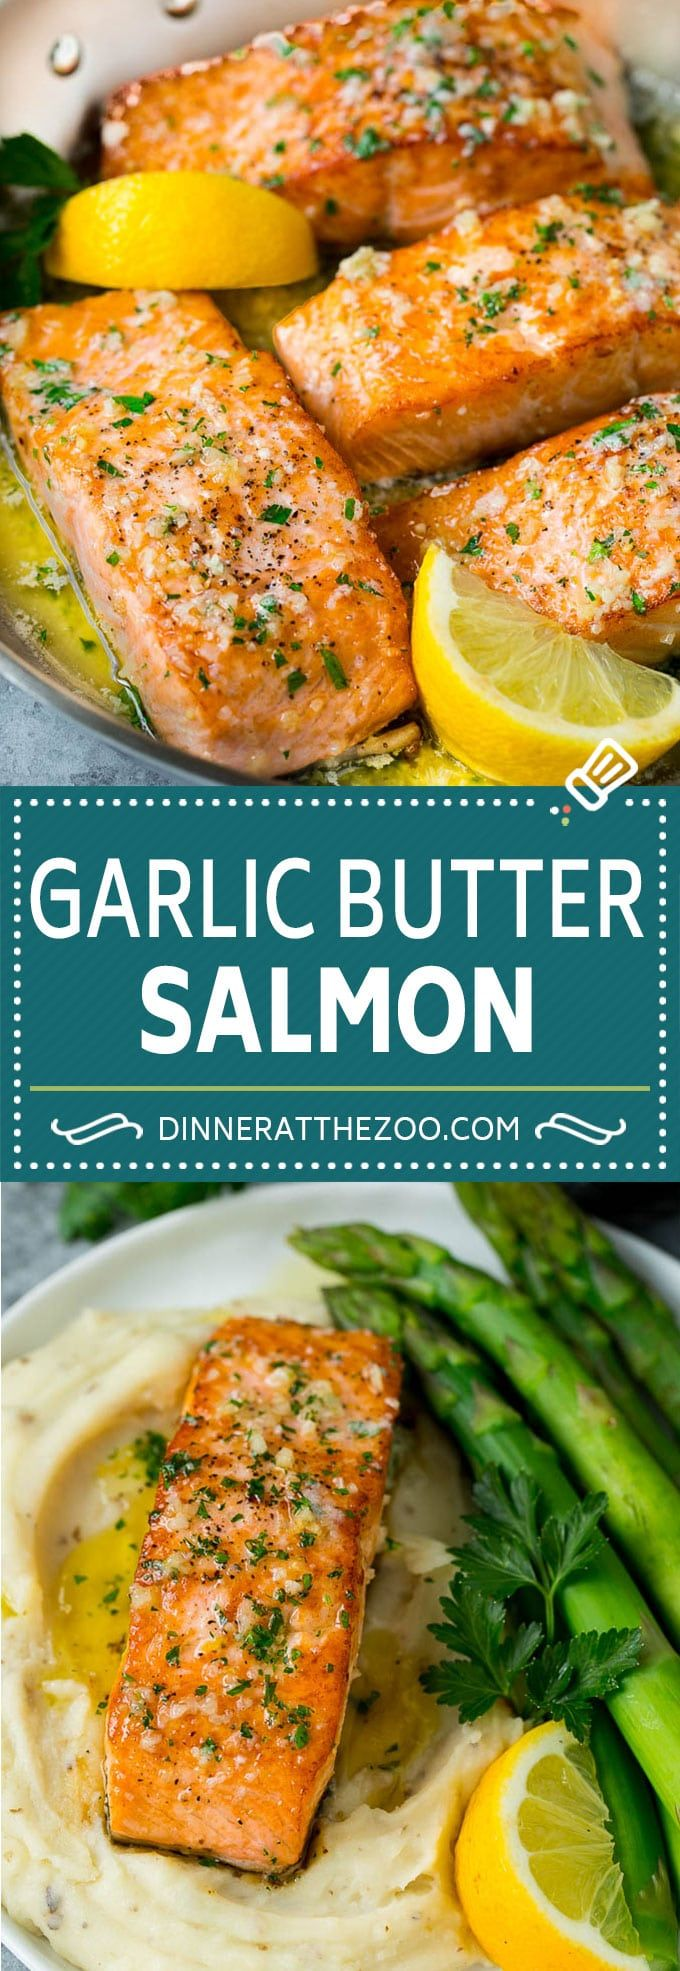 Pan Seared Salmon with Garlic Butter - Dinner at the Zoo